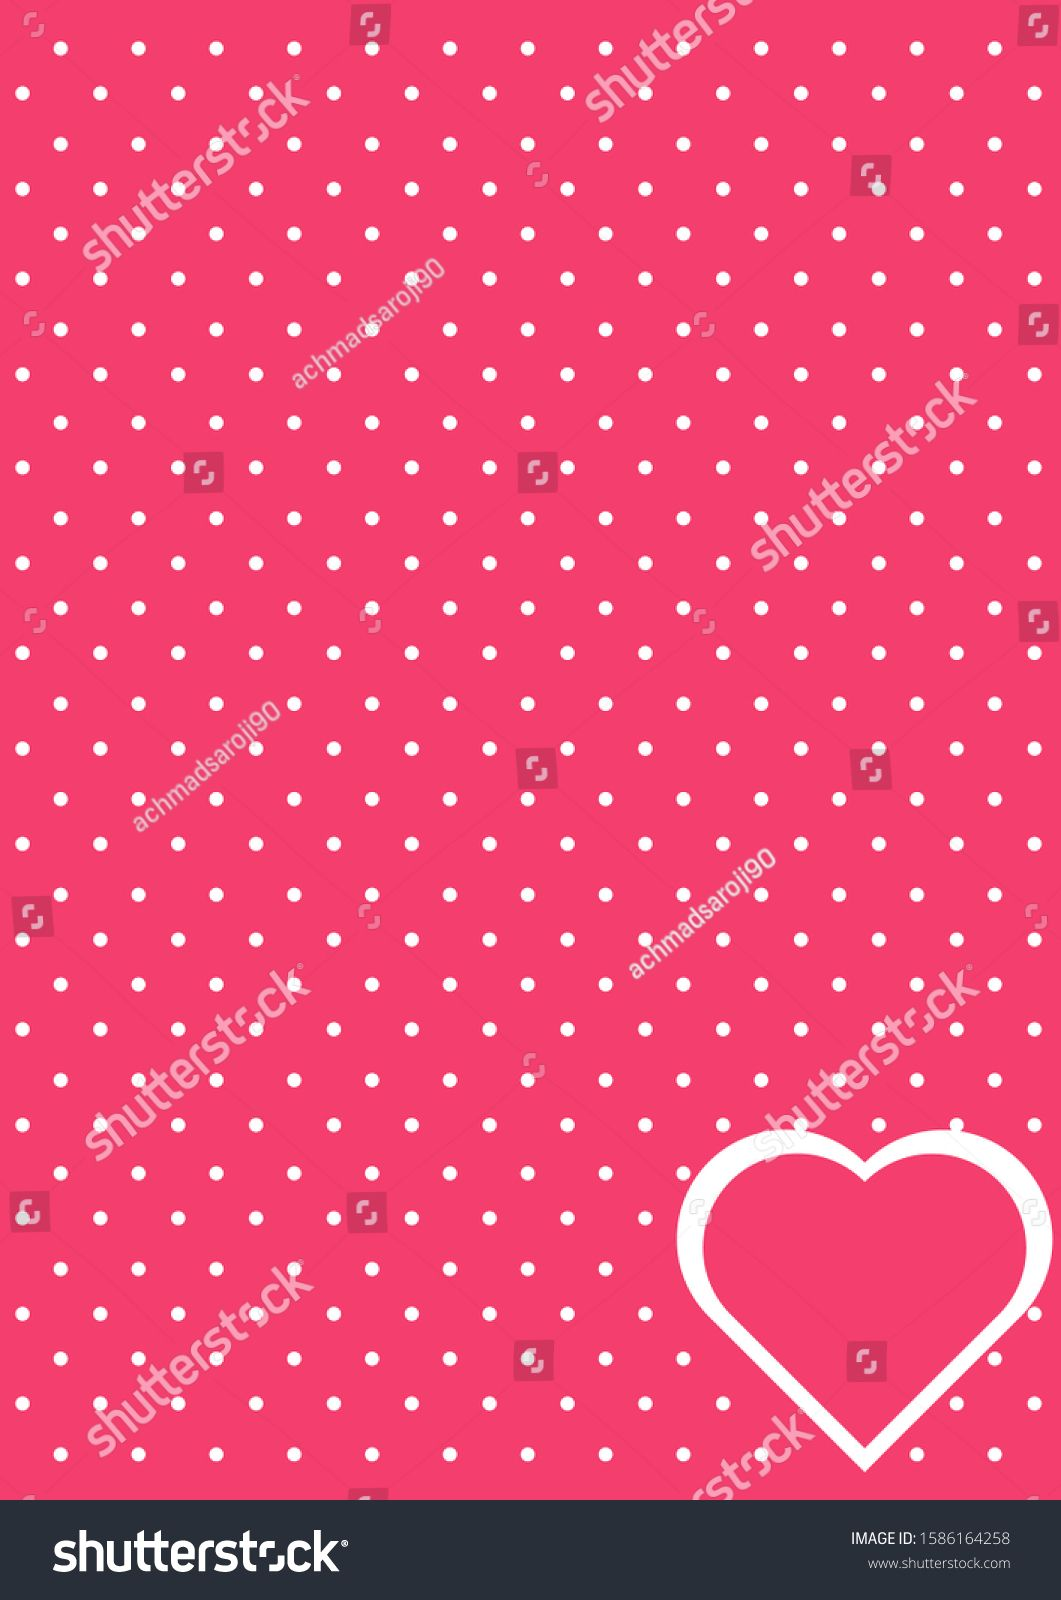 background pink polkadot love romance stock vector royalty free 1586164258 polka dots royalty free background pinterest